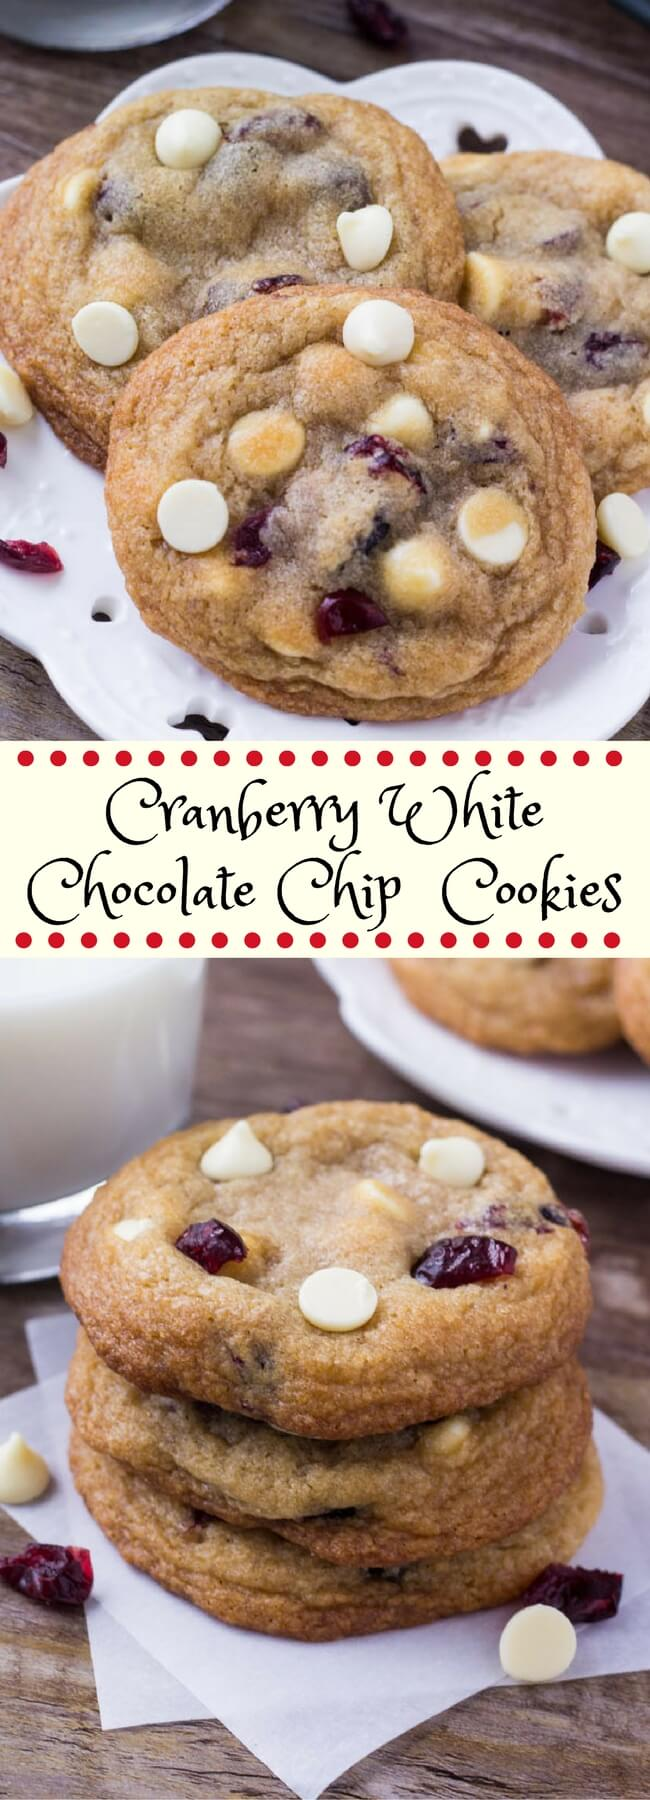 These cranberry white chocolate cookies are soft and chewy with slightly golden edges. The combination of white chocolate and dried cranberries is perfect for Christmas.#whitechocolatecranberry #cranberry #whitechocolatecranberrycookies #christmascookies